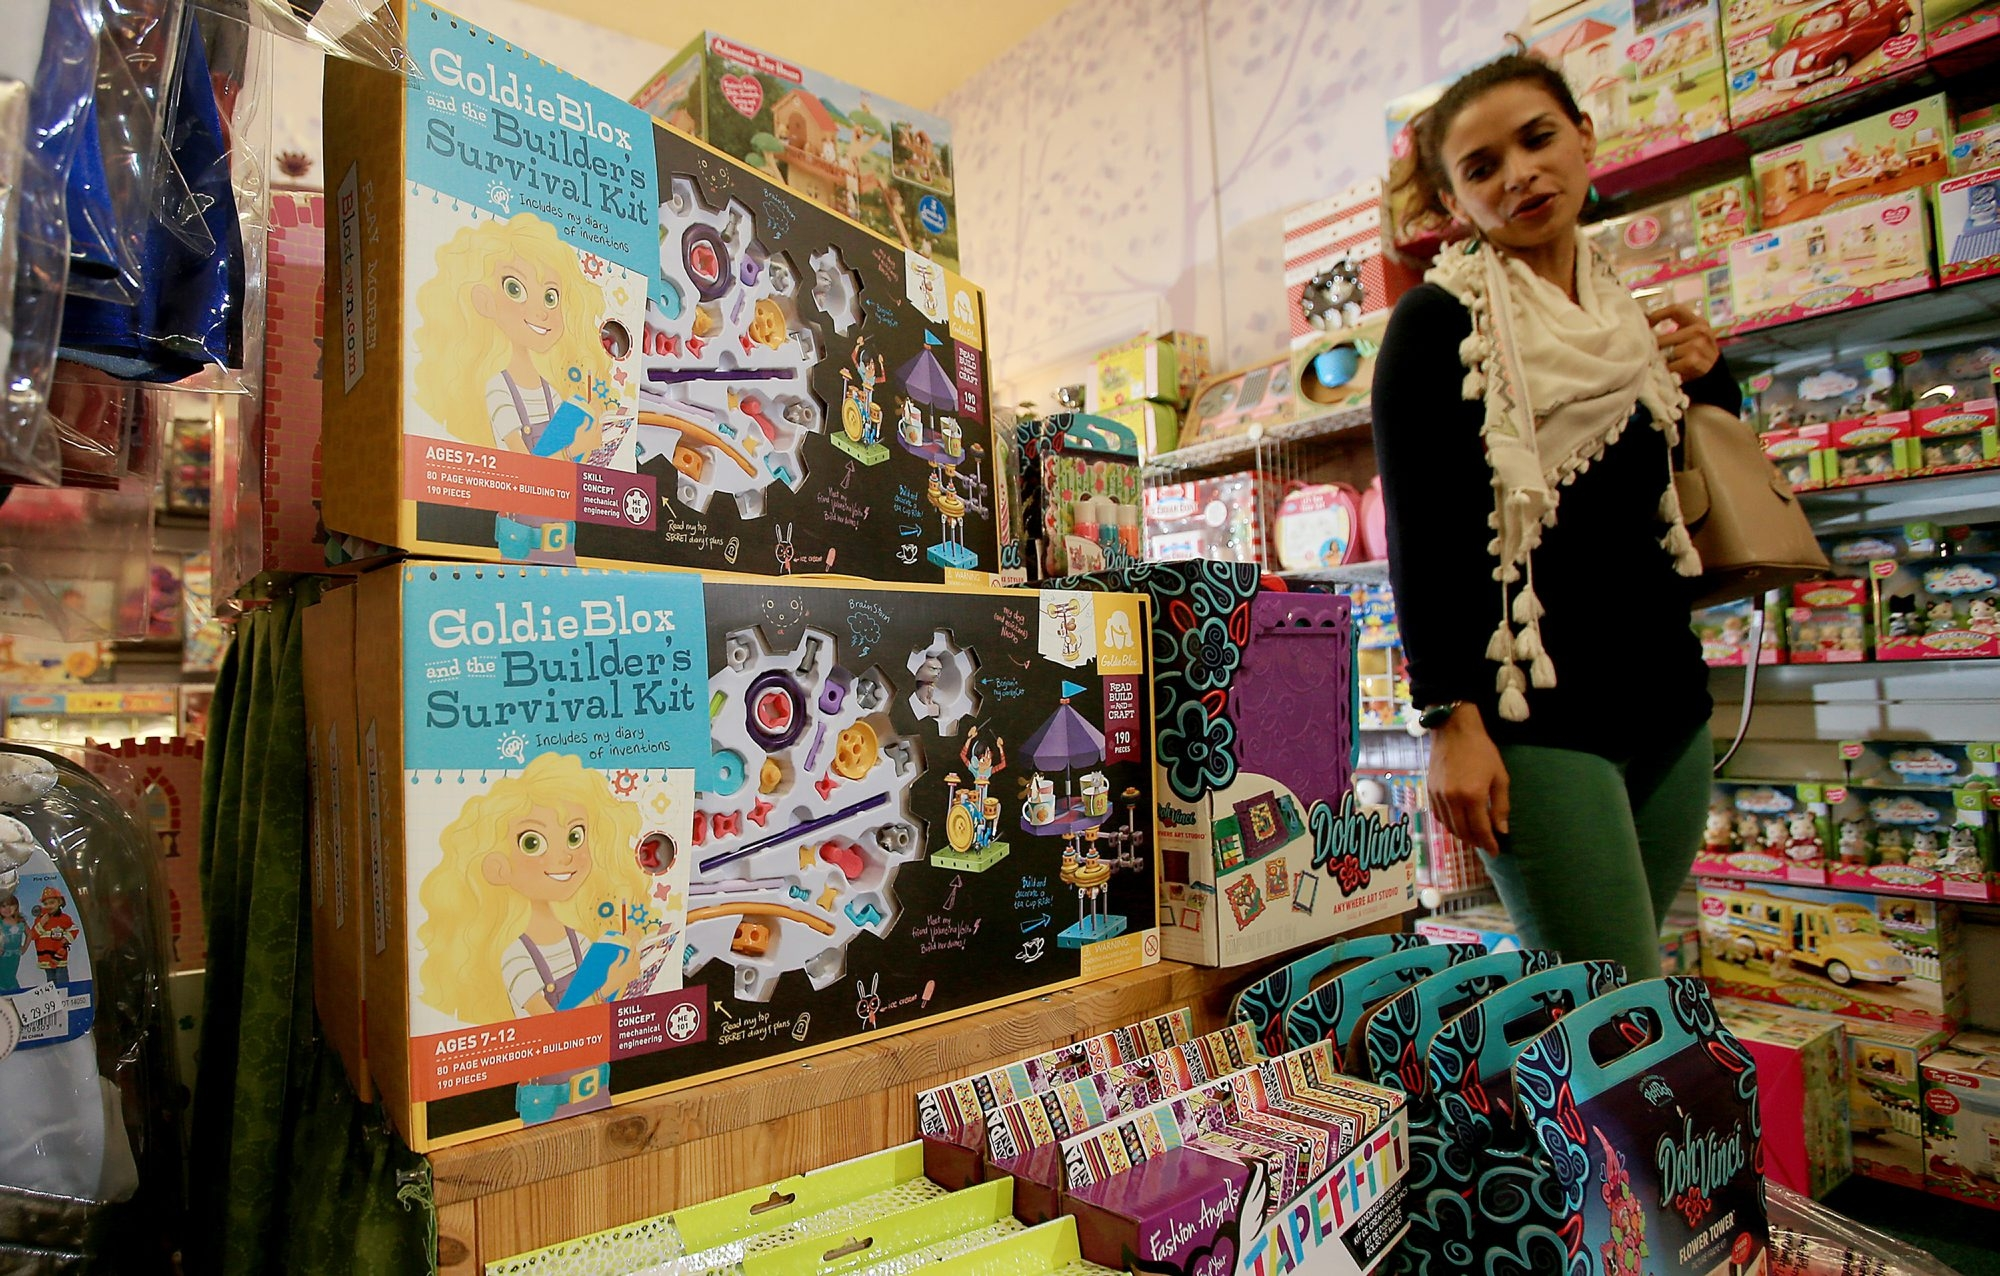 Dulce Aguilar shops for a gift at the Dinosaur Farm, an independent toy store in South Pasadena, Calif., that has seen brisk sales in construction toys for girls such as GoldieBlox, pictured.